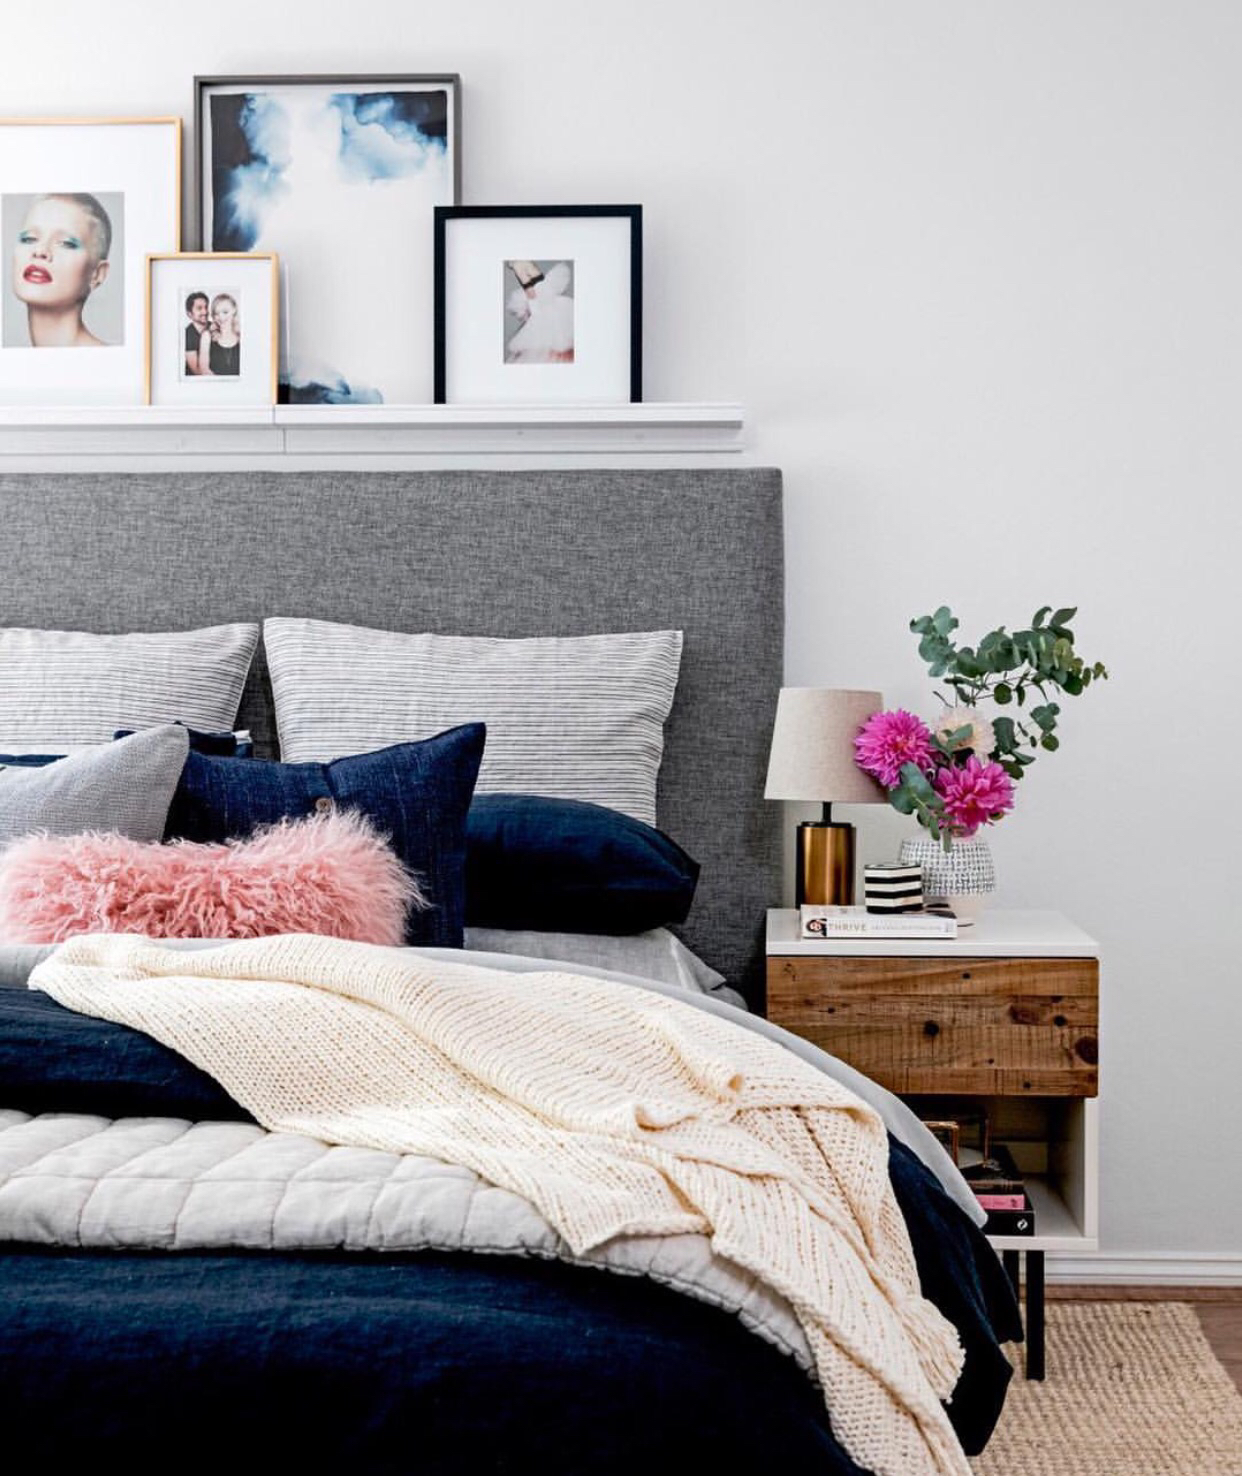 How to Decorate Above A Bed - Use a Shelf